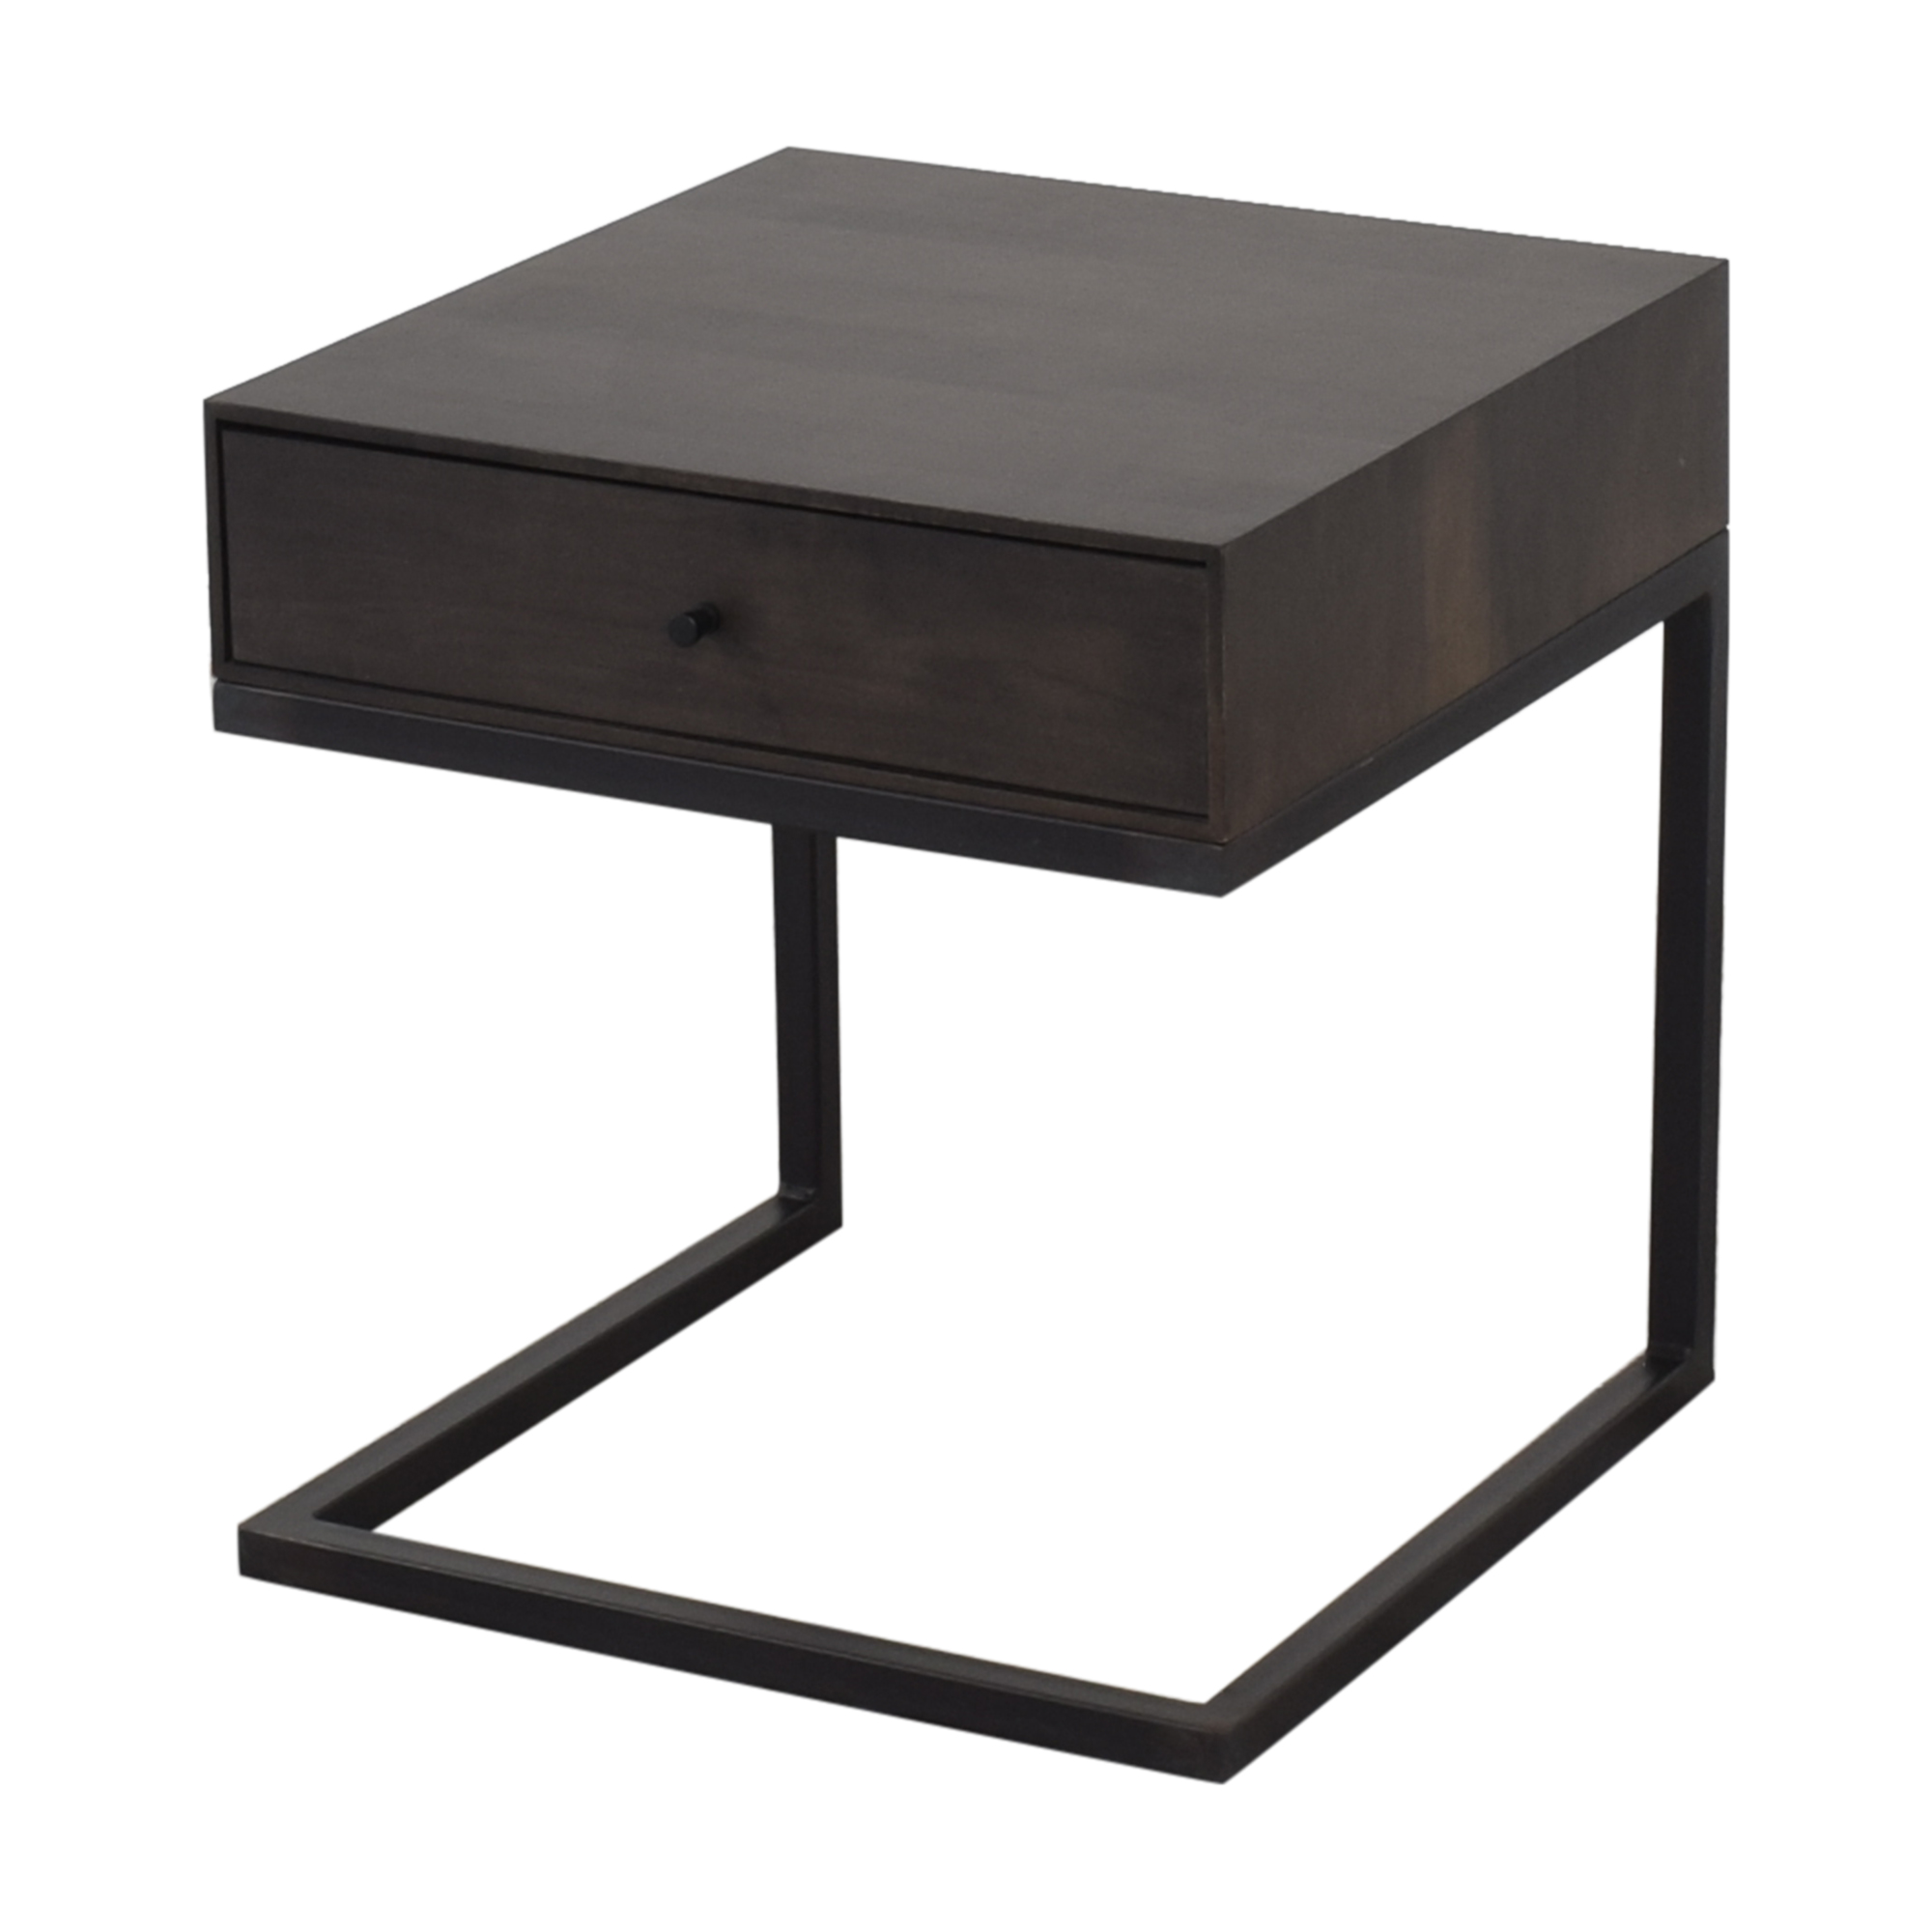 Room & Board Room & Board Hudson One Drawer C-Table Nightstand End Tables